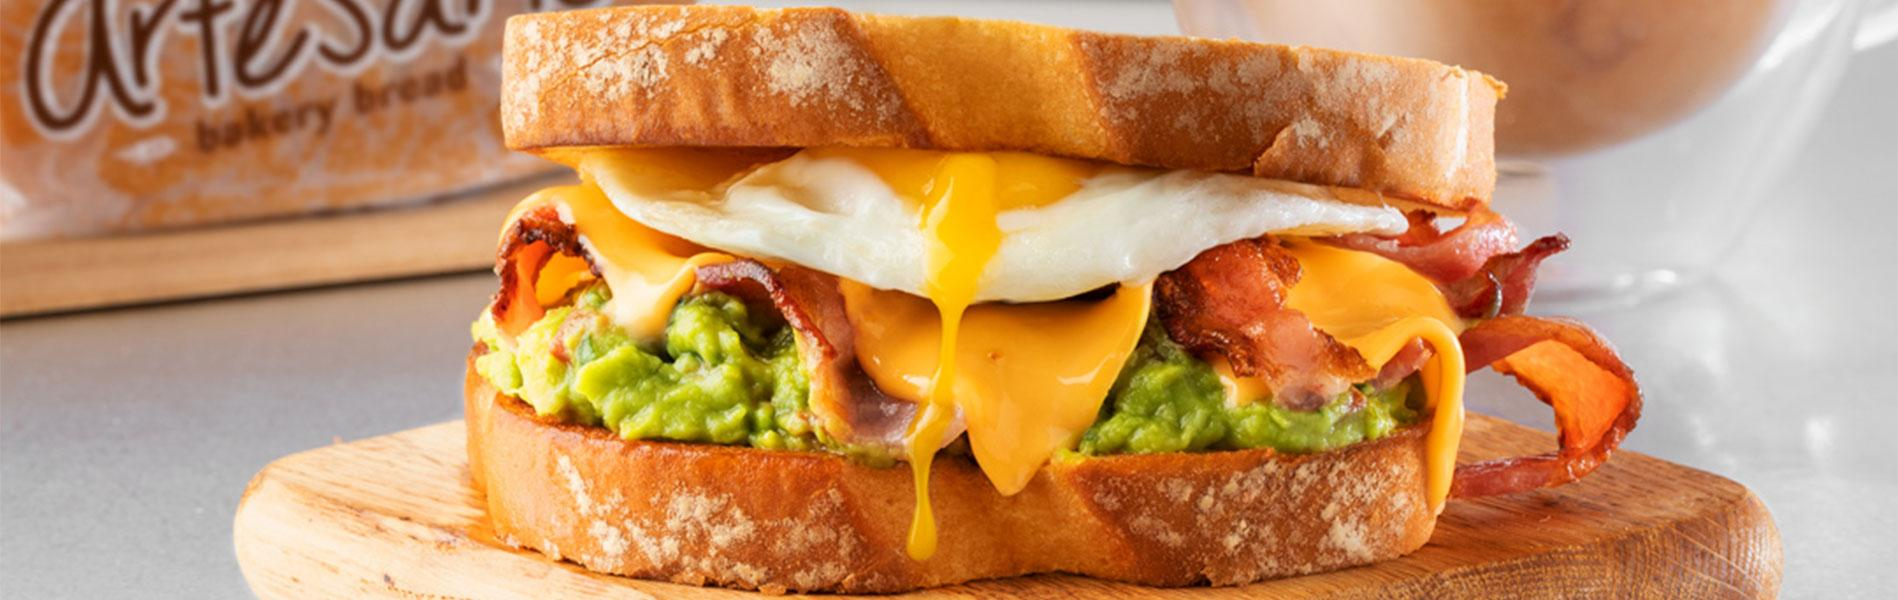 Breakfast sandwich with spicy guacamole, bacon, egg and Cheddar cheese